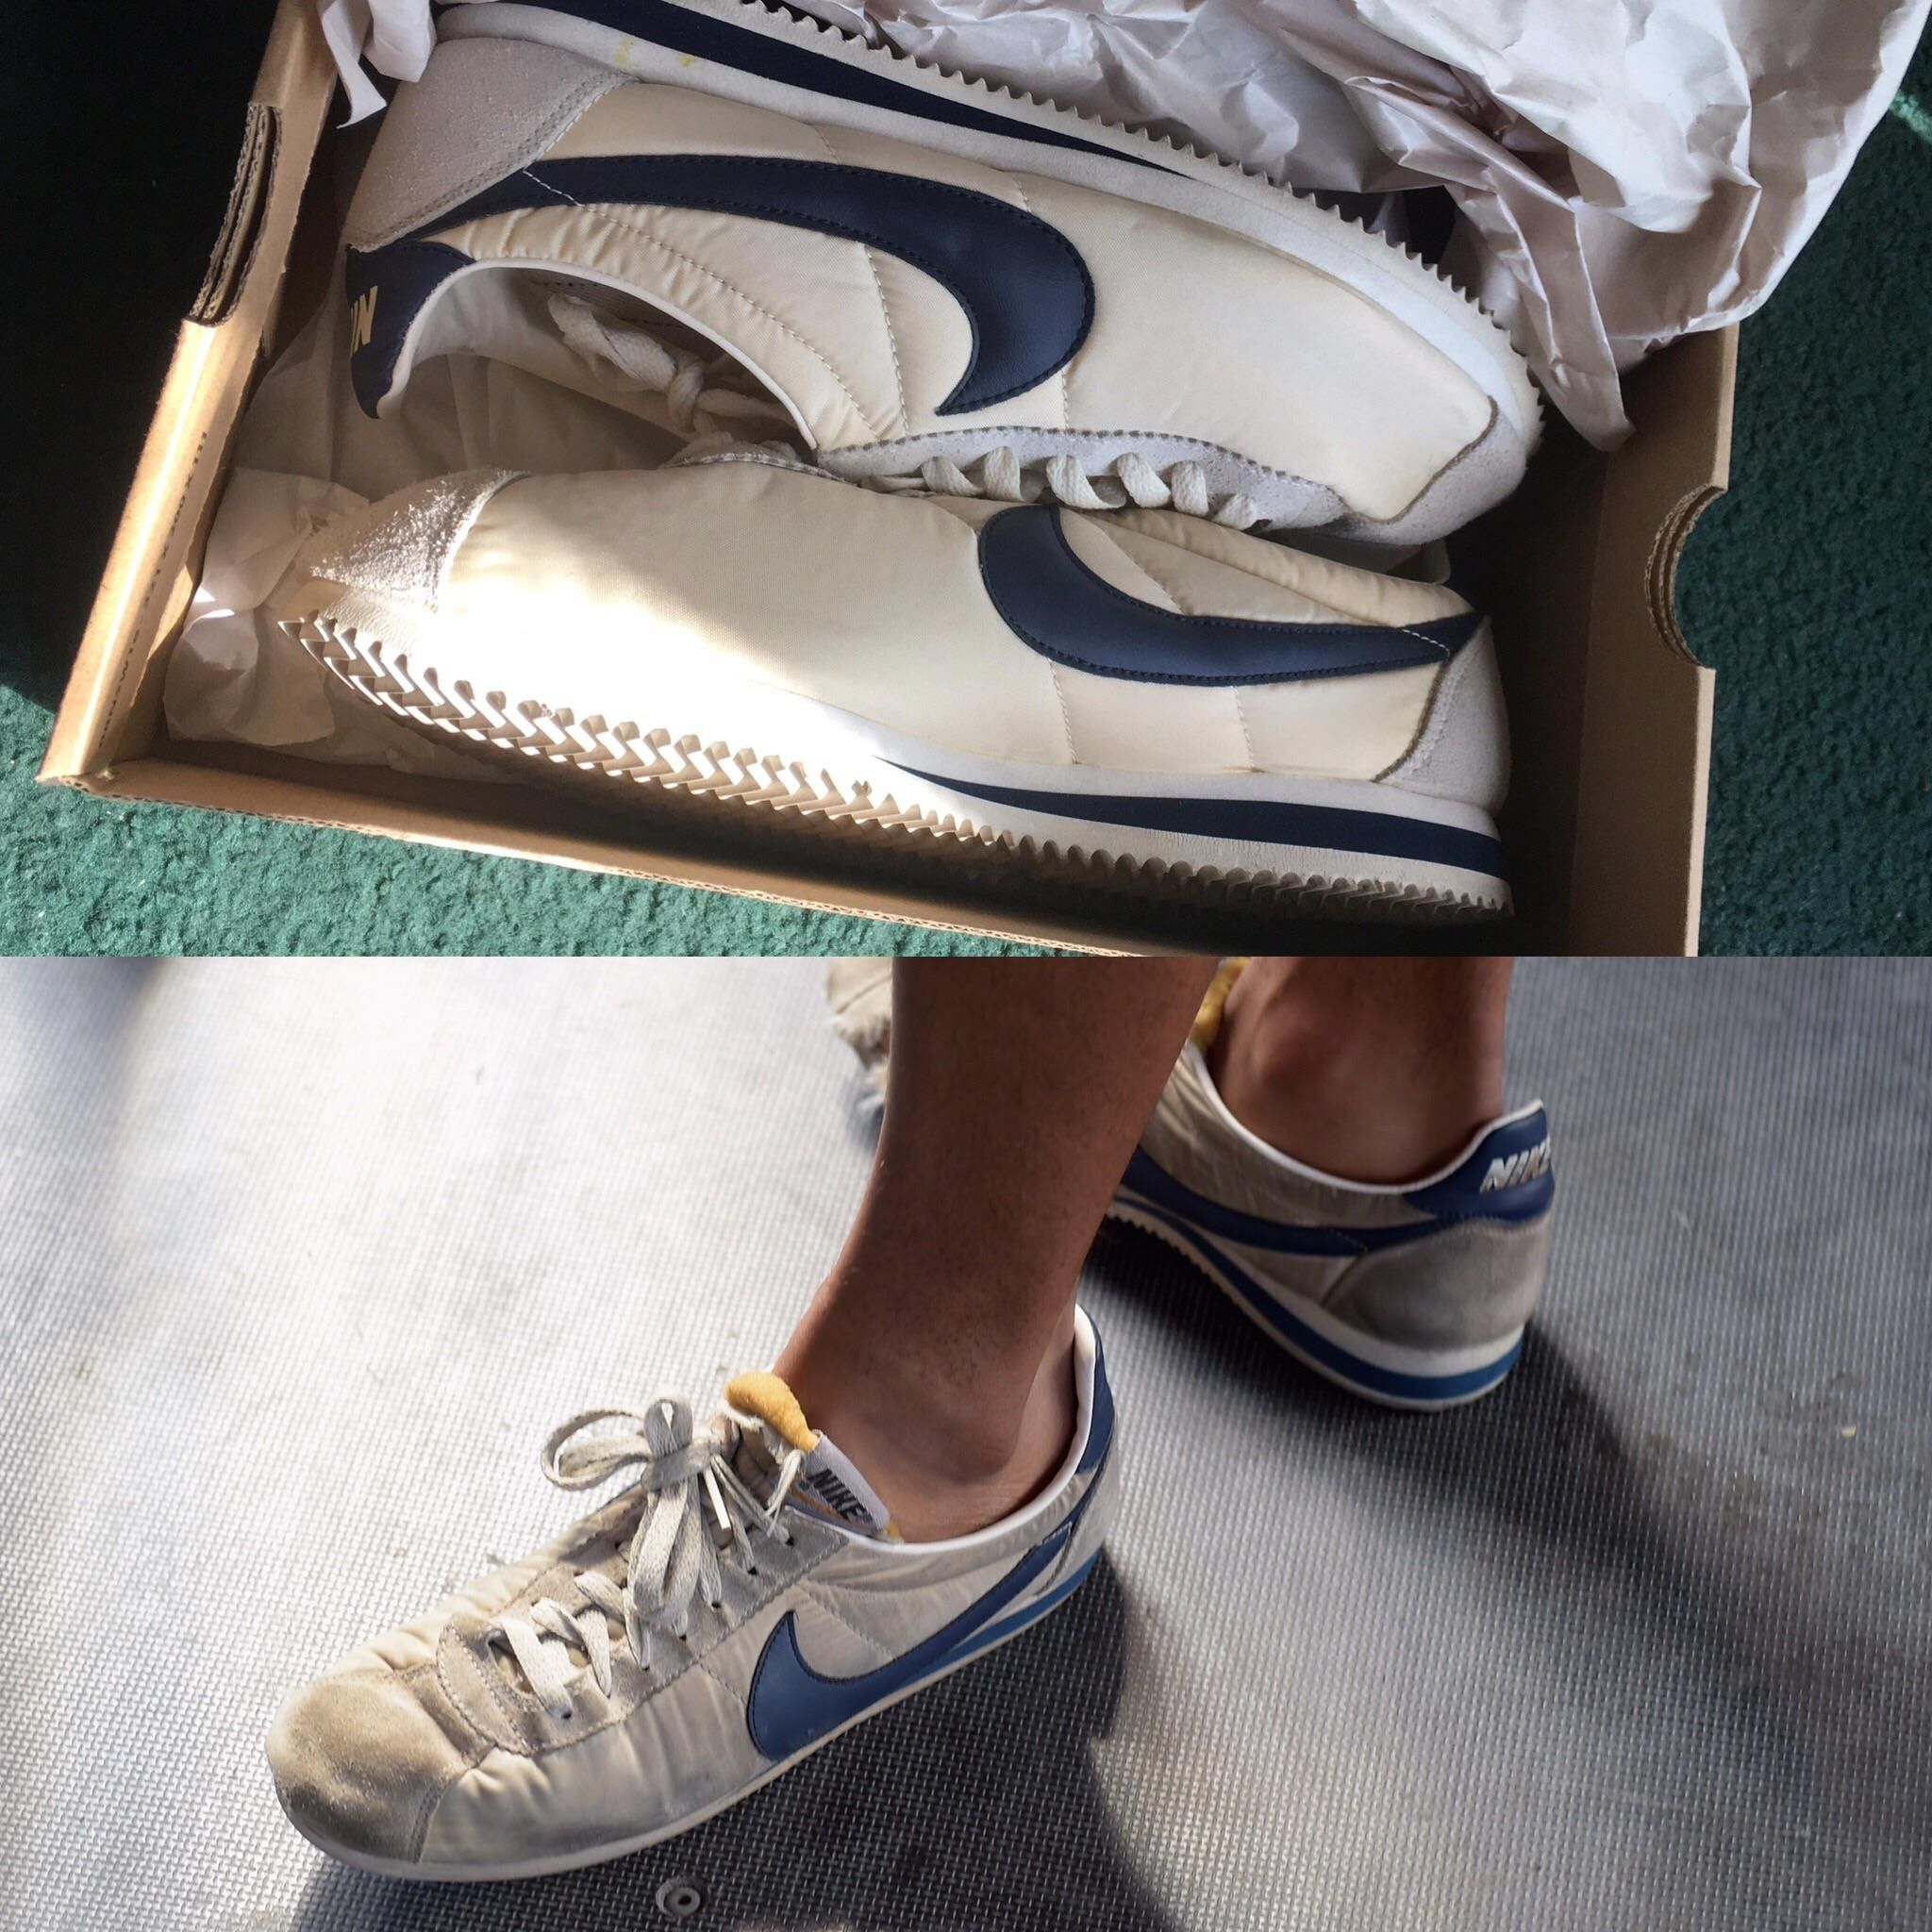 a458aa2583deb I've been hunting for a pair of these sneakers they're the J. Crew Nike  Cortez